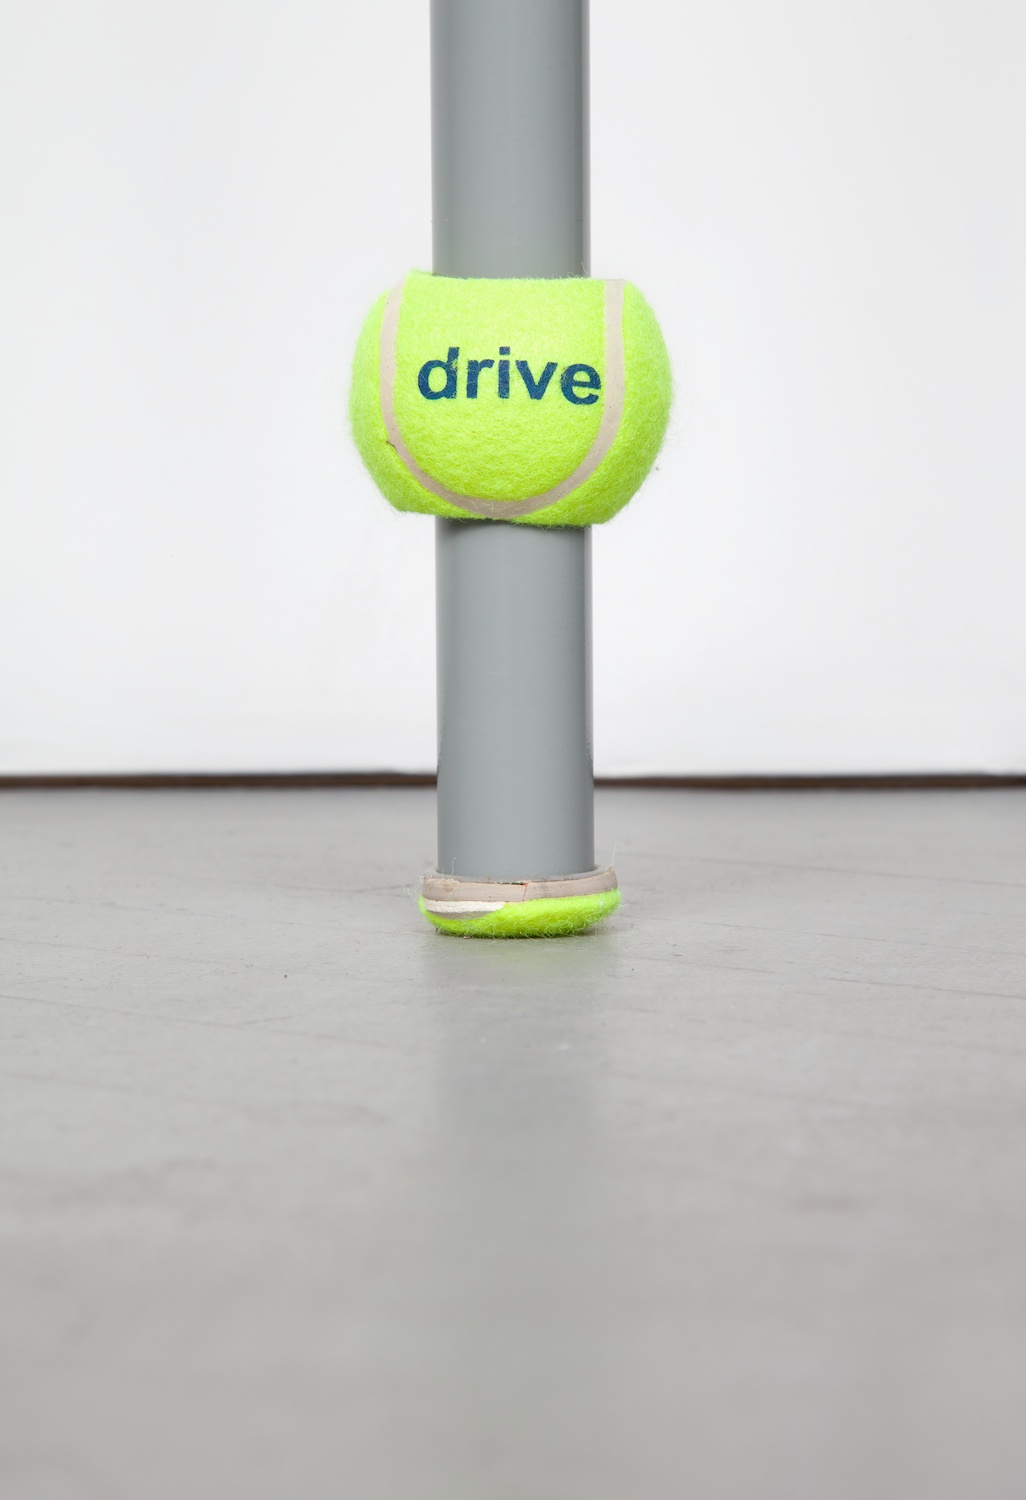 Chadwick Rantanen  Telescopic Pole (Drive Medical/Grey)  (Detail) 2012 Powdercoated aluminum, plastic, walkerballs 296h x 1 ½w in CR027